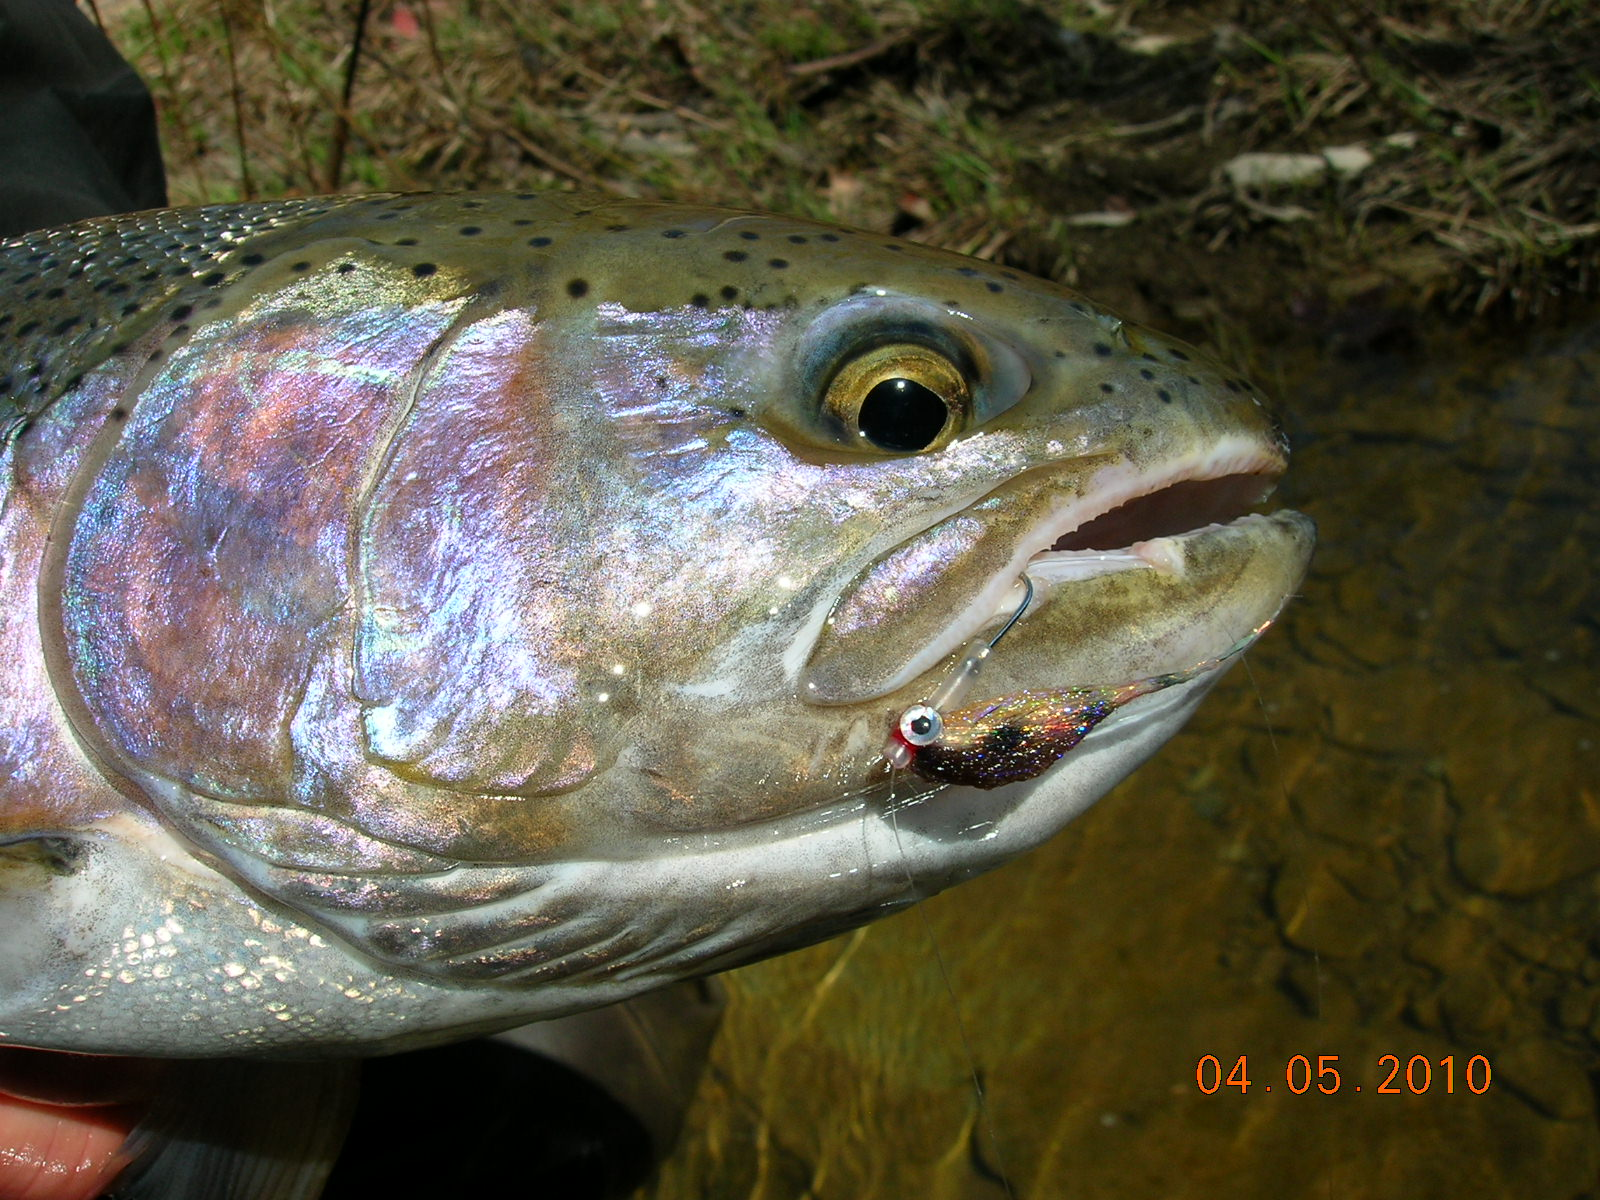 Steelhead alley outfitters lake erie fly fishing guide for Ohio fishing season